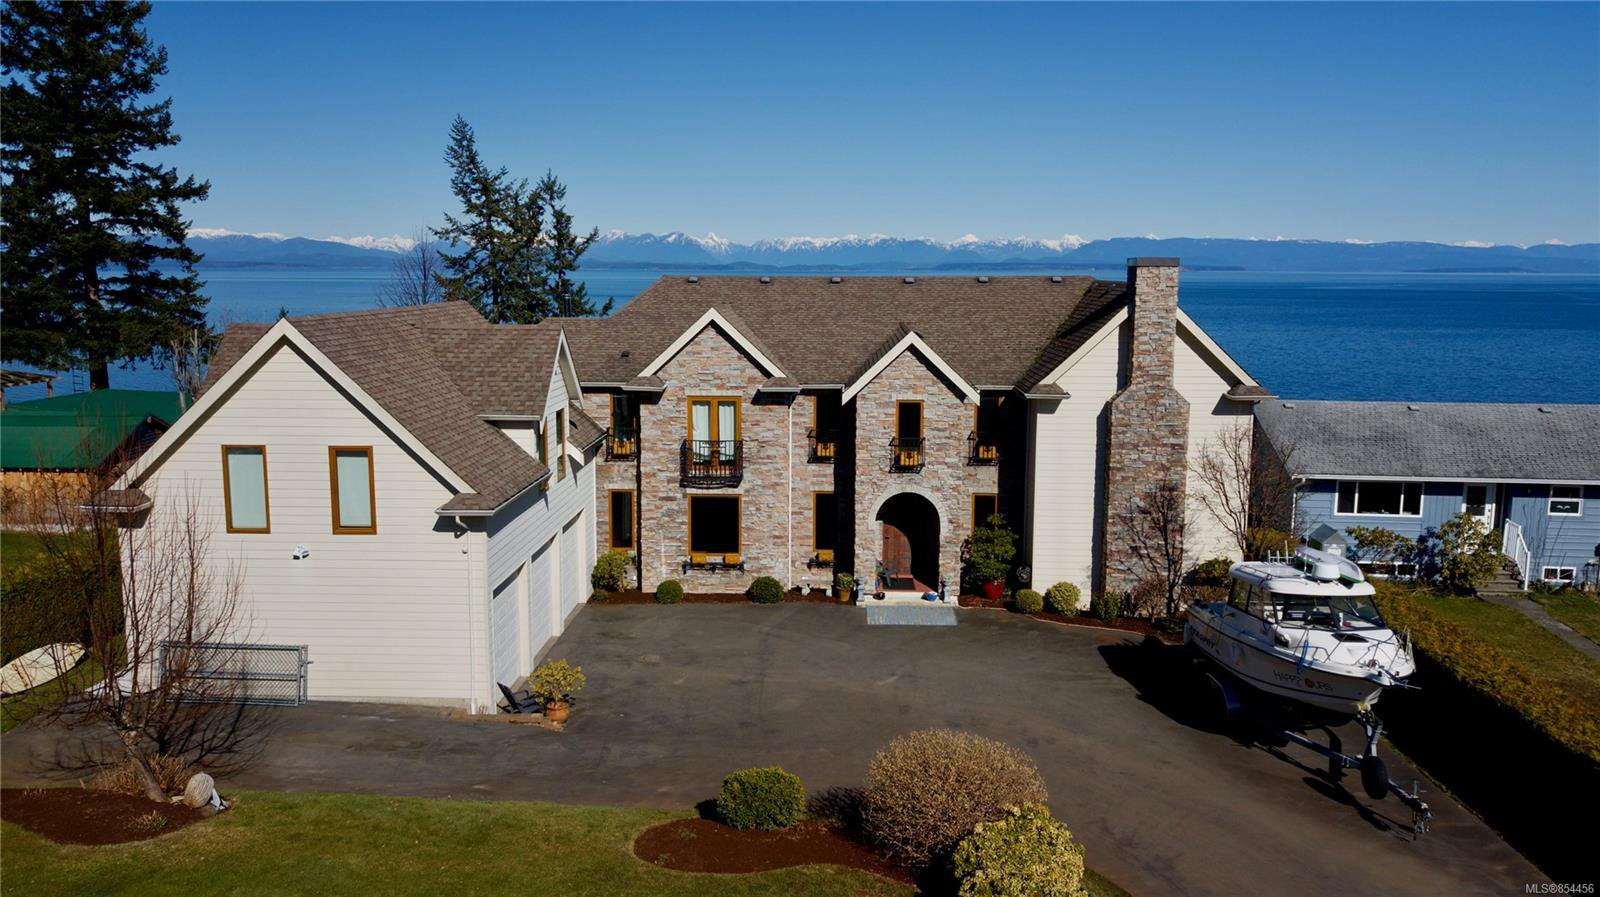 Main Photo: 4085 S Island Hwy in : CR Campbell River South Single Family Detached for sale (Campbell River)  : MLS®# 854456